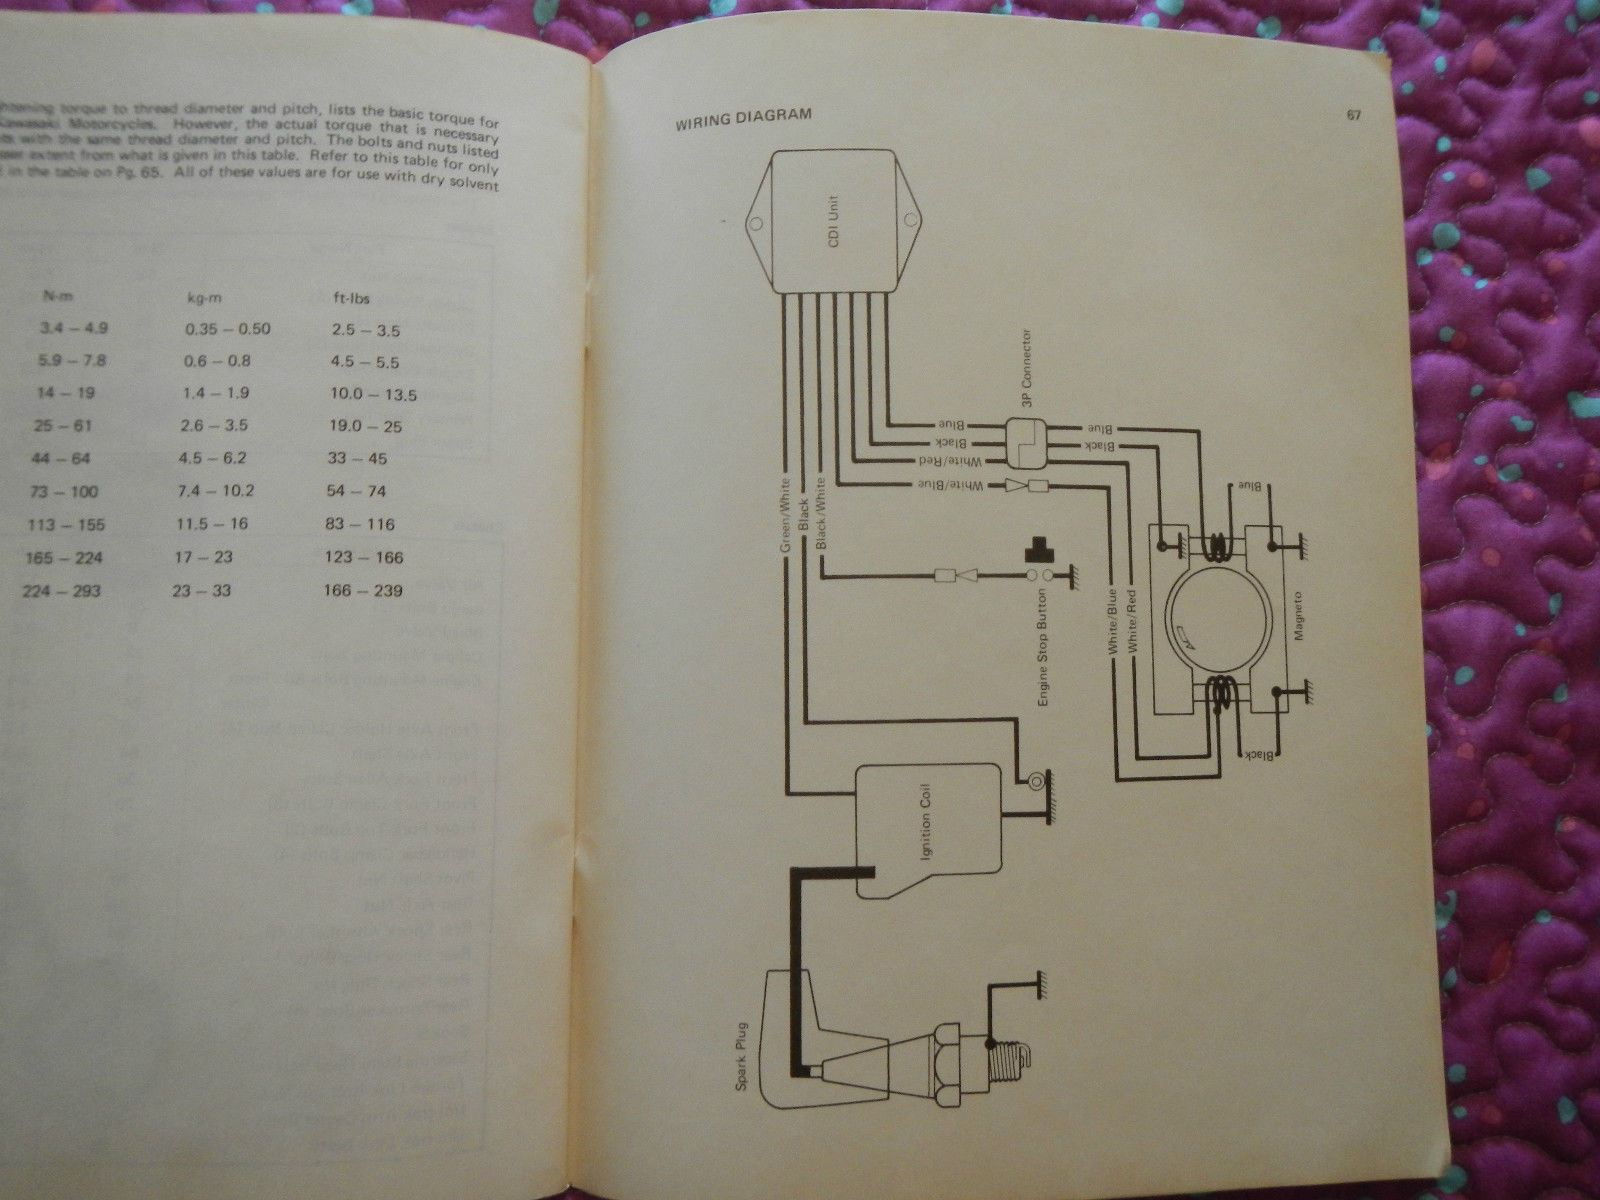 kawasaki 125 wiring diagram 1983 83 kawasaki kx125 kx 125 kx125b2 and 50 similar items  1983 83 kawasaki kx125 kx 125 kx125b2